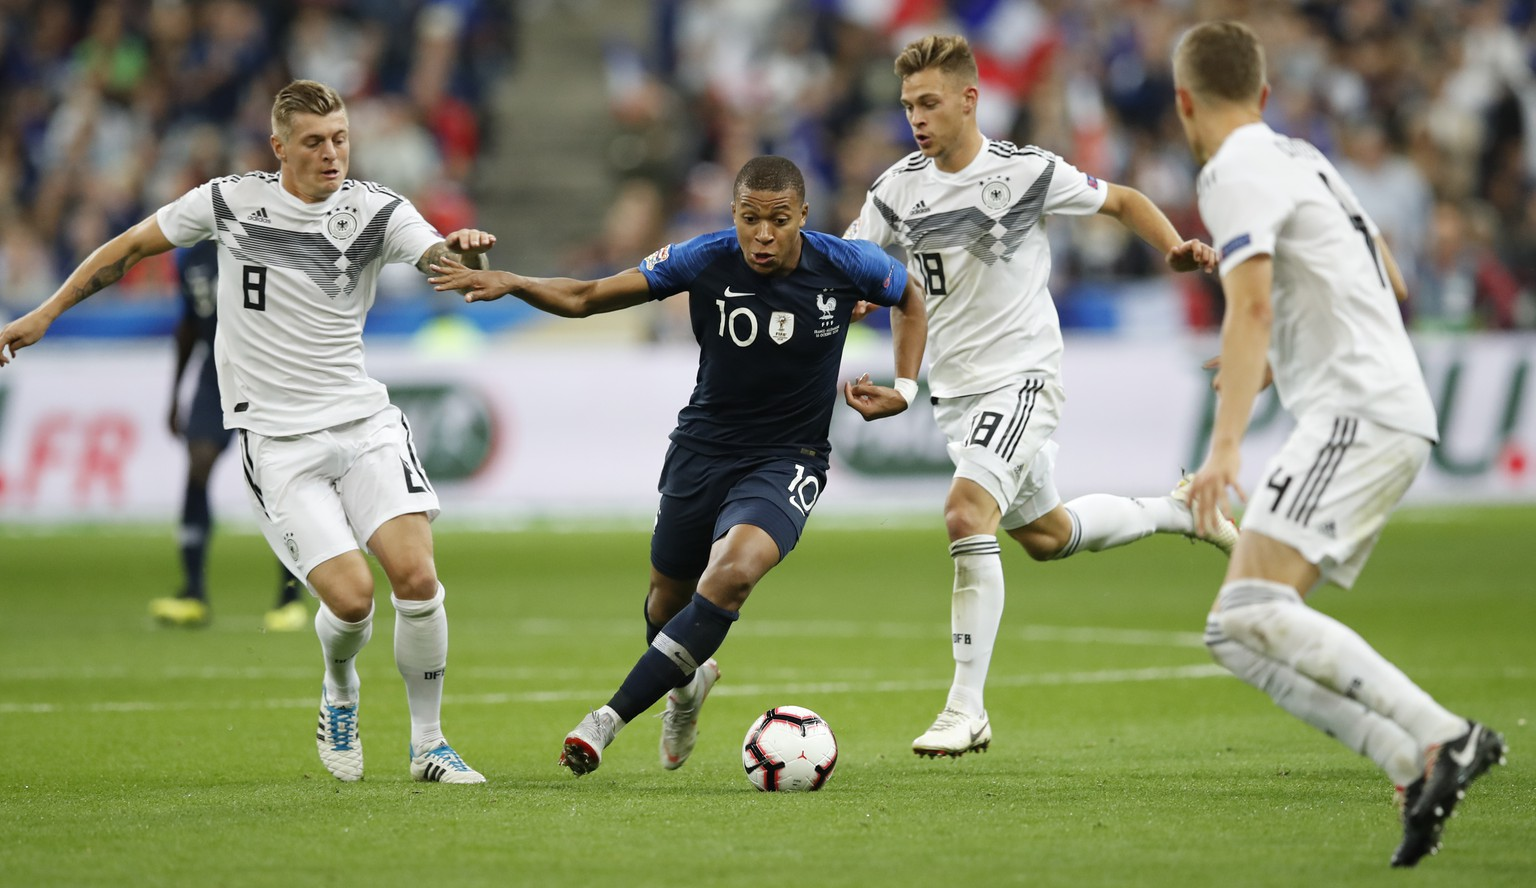 France's Kylian Mbappe, 2nd left, challenges for the ball with Germany's Toni Kroos, left, and Germany's Toni Kroos while Germany's Matthias Ginter, right, looks on during a UEFA Nations League soccer match between France and Germany at Stade de France stadium in Saint Denis, north of Paris, Tuesday, Oct. 16, 2018. (AP Photo/Christophe Ena)